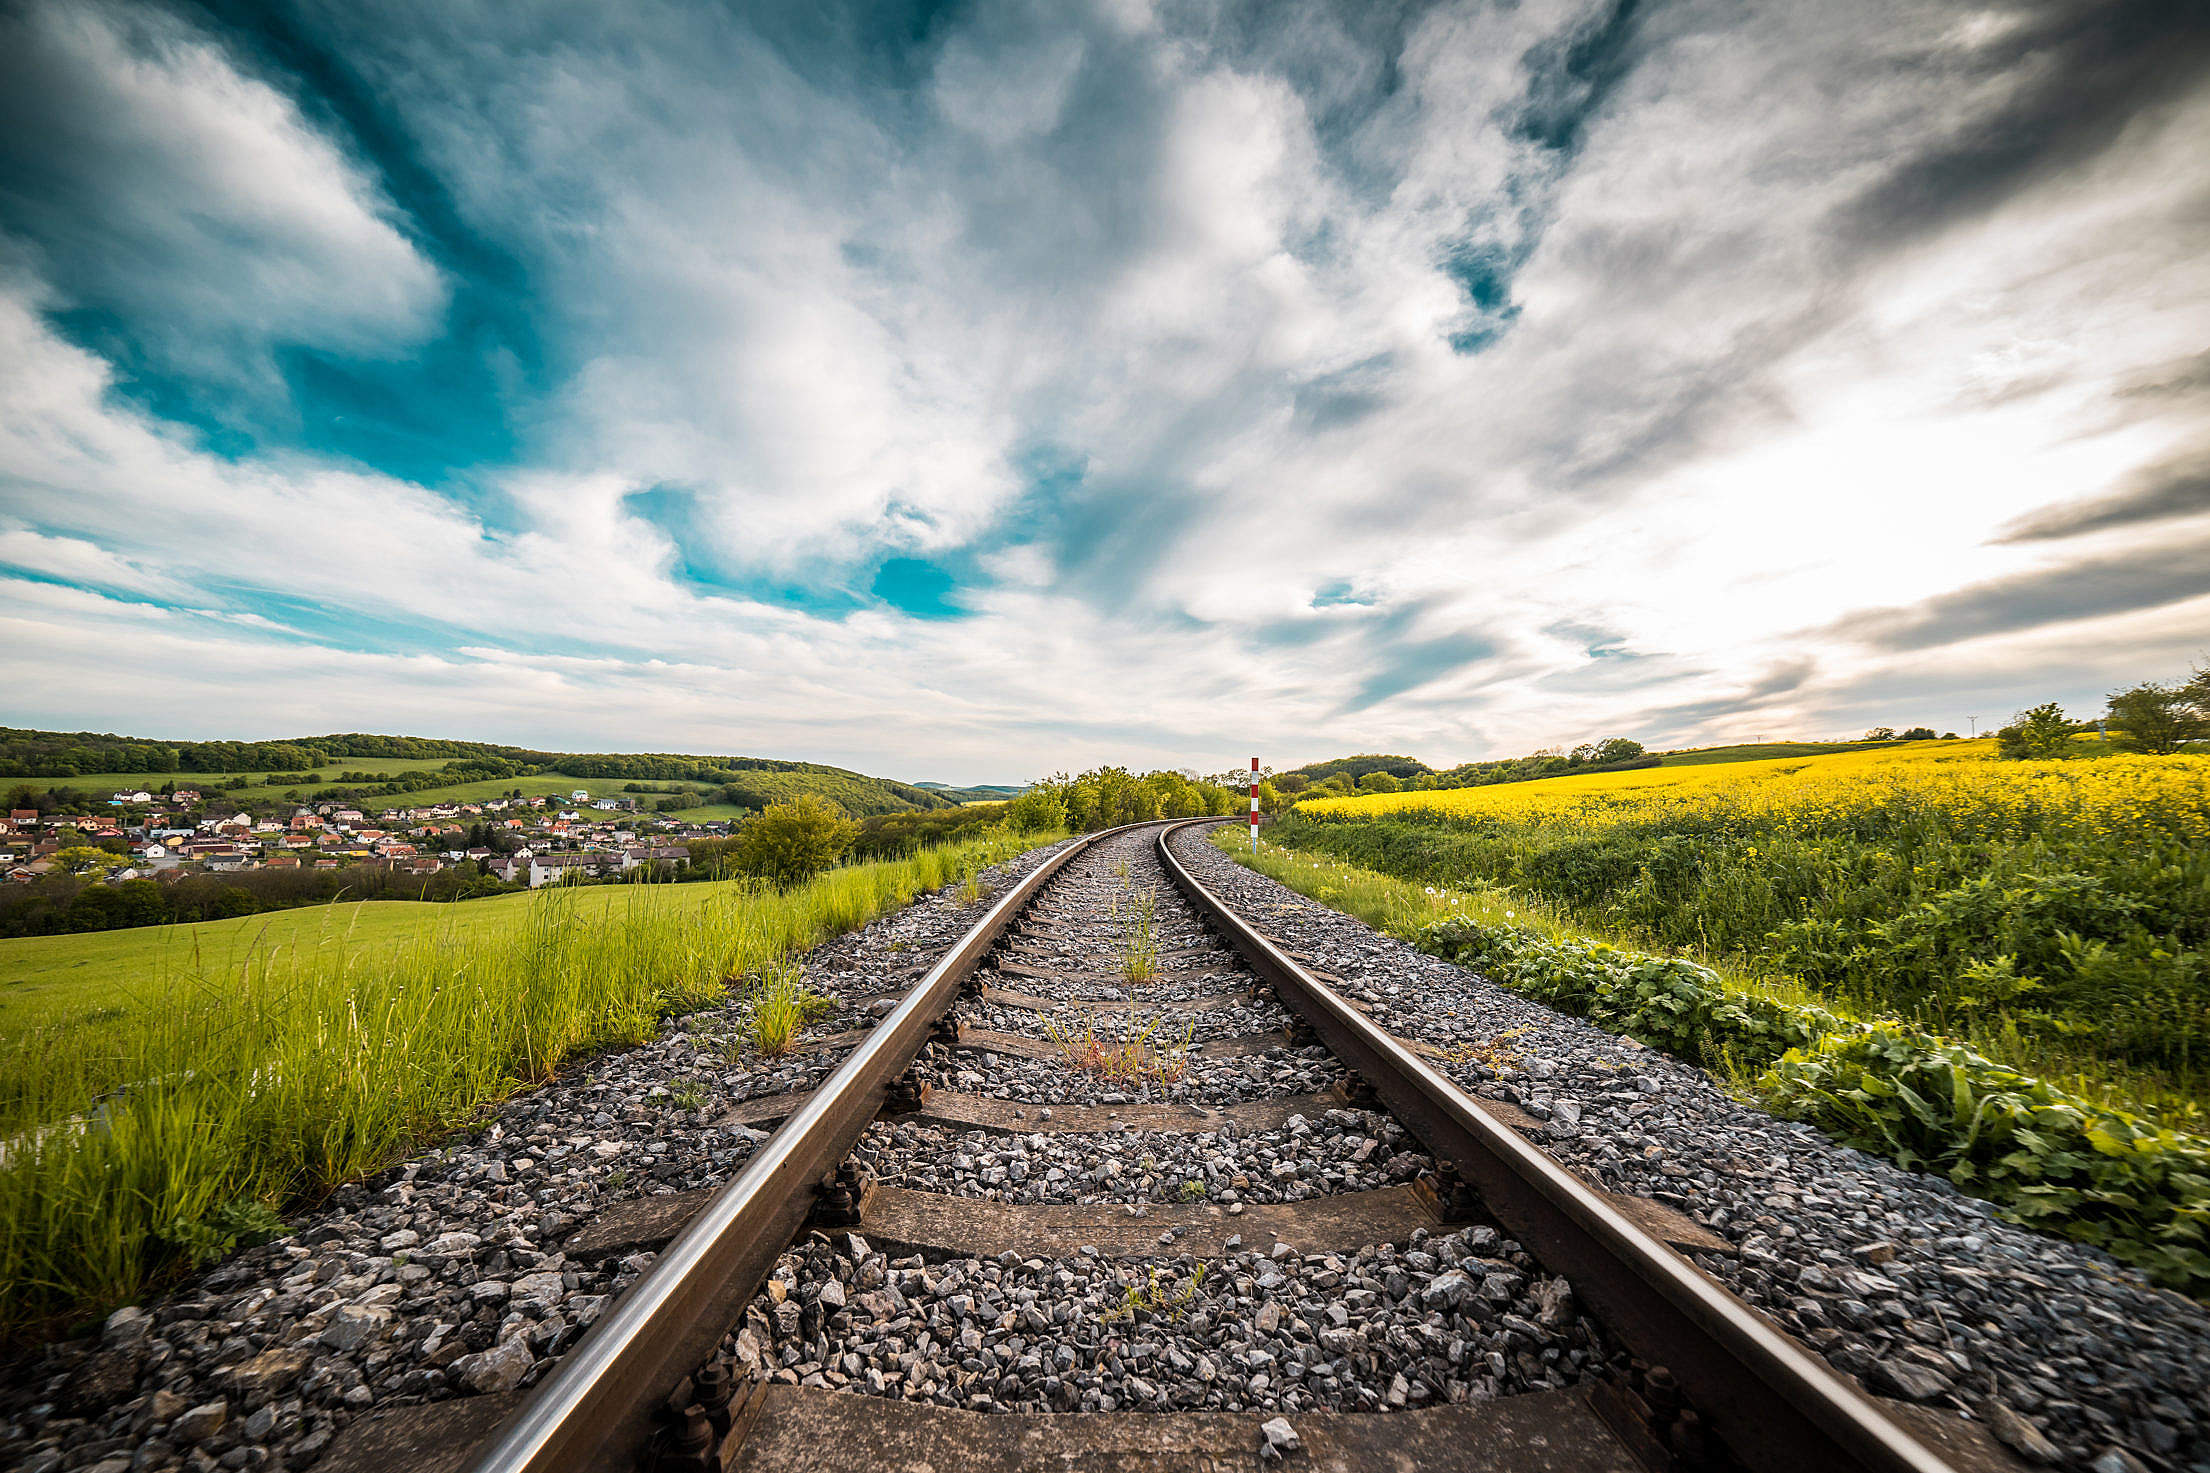 Railway Road in The Middle of a Field Free Stock Photo